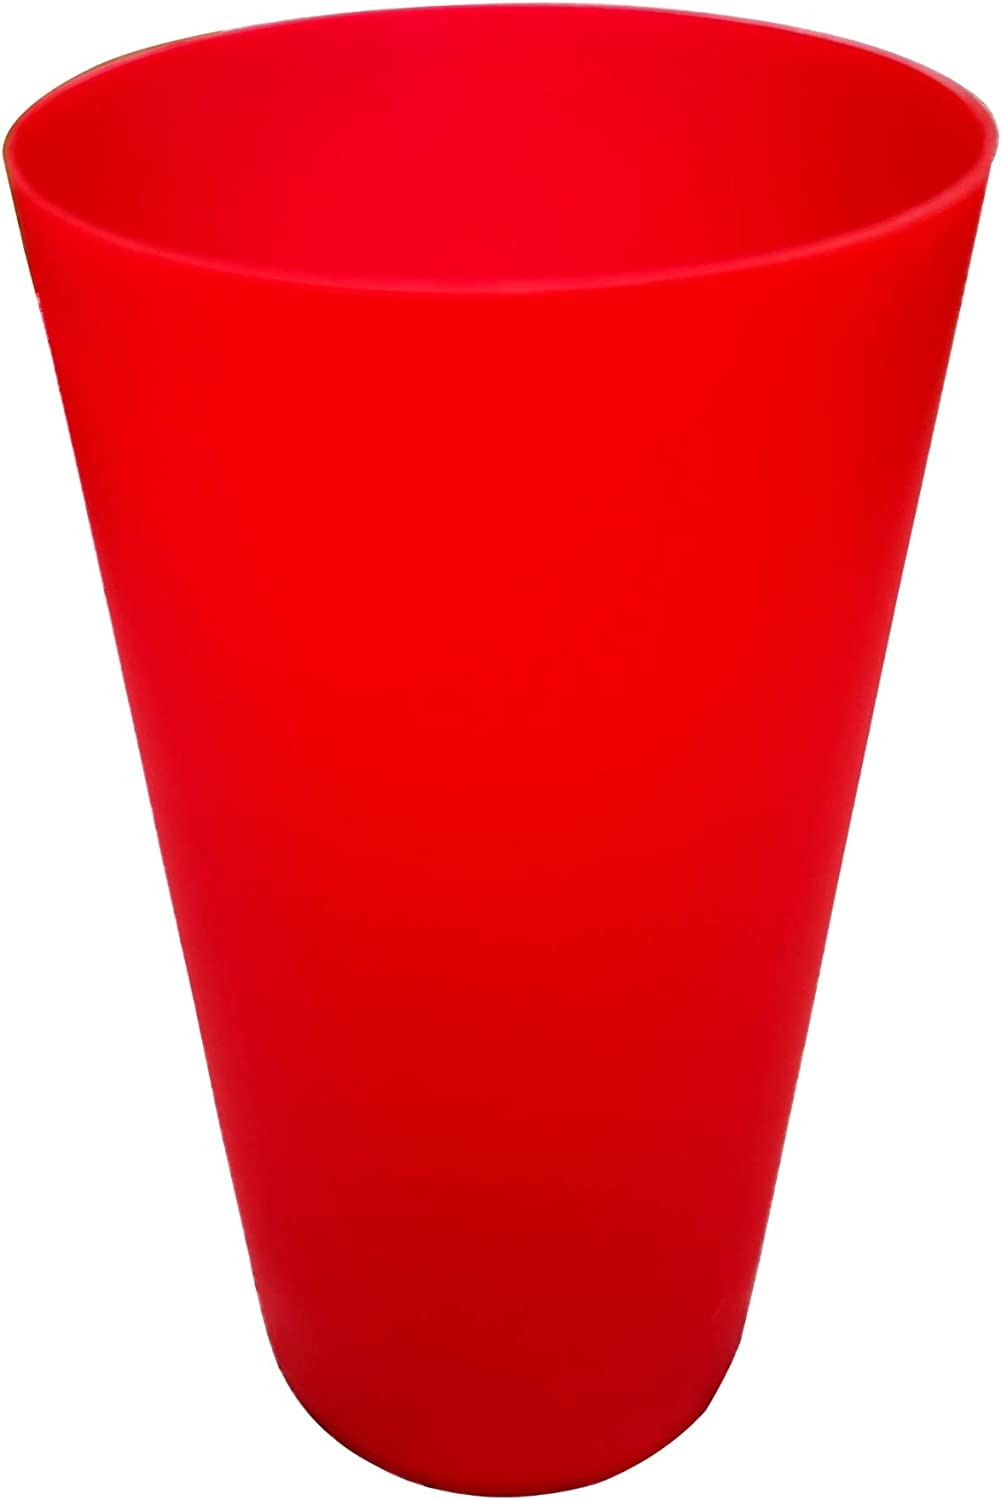 32-ounce Plastic Tumblers sets, BPA-free Reusable Kids Drinking Cups For Kitchen Home Party Holiday Indoor Outdoor Use set of 12 (Red)